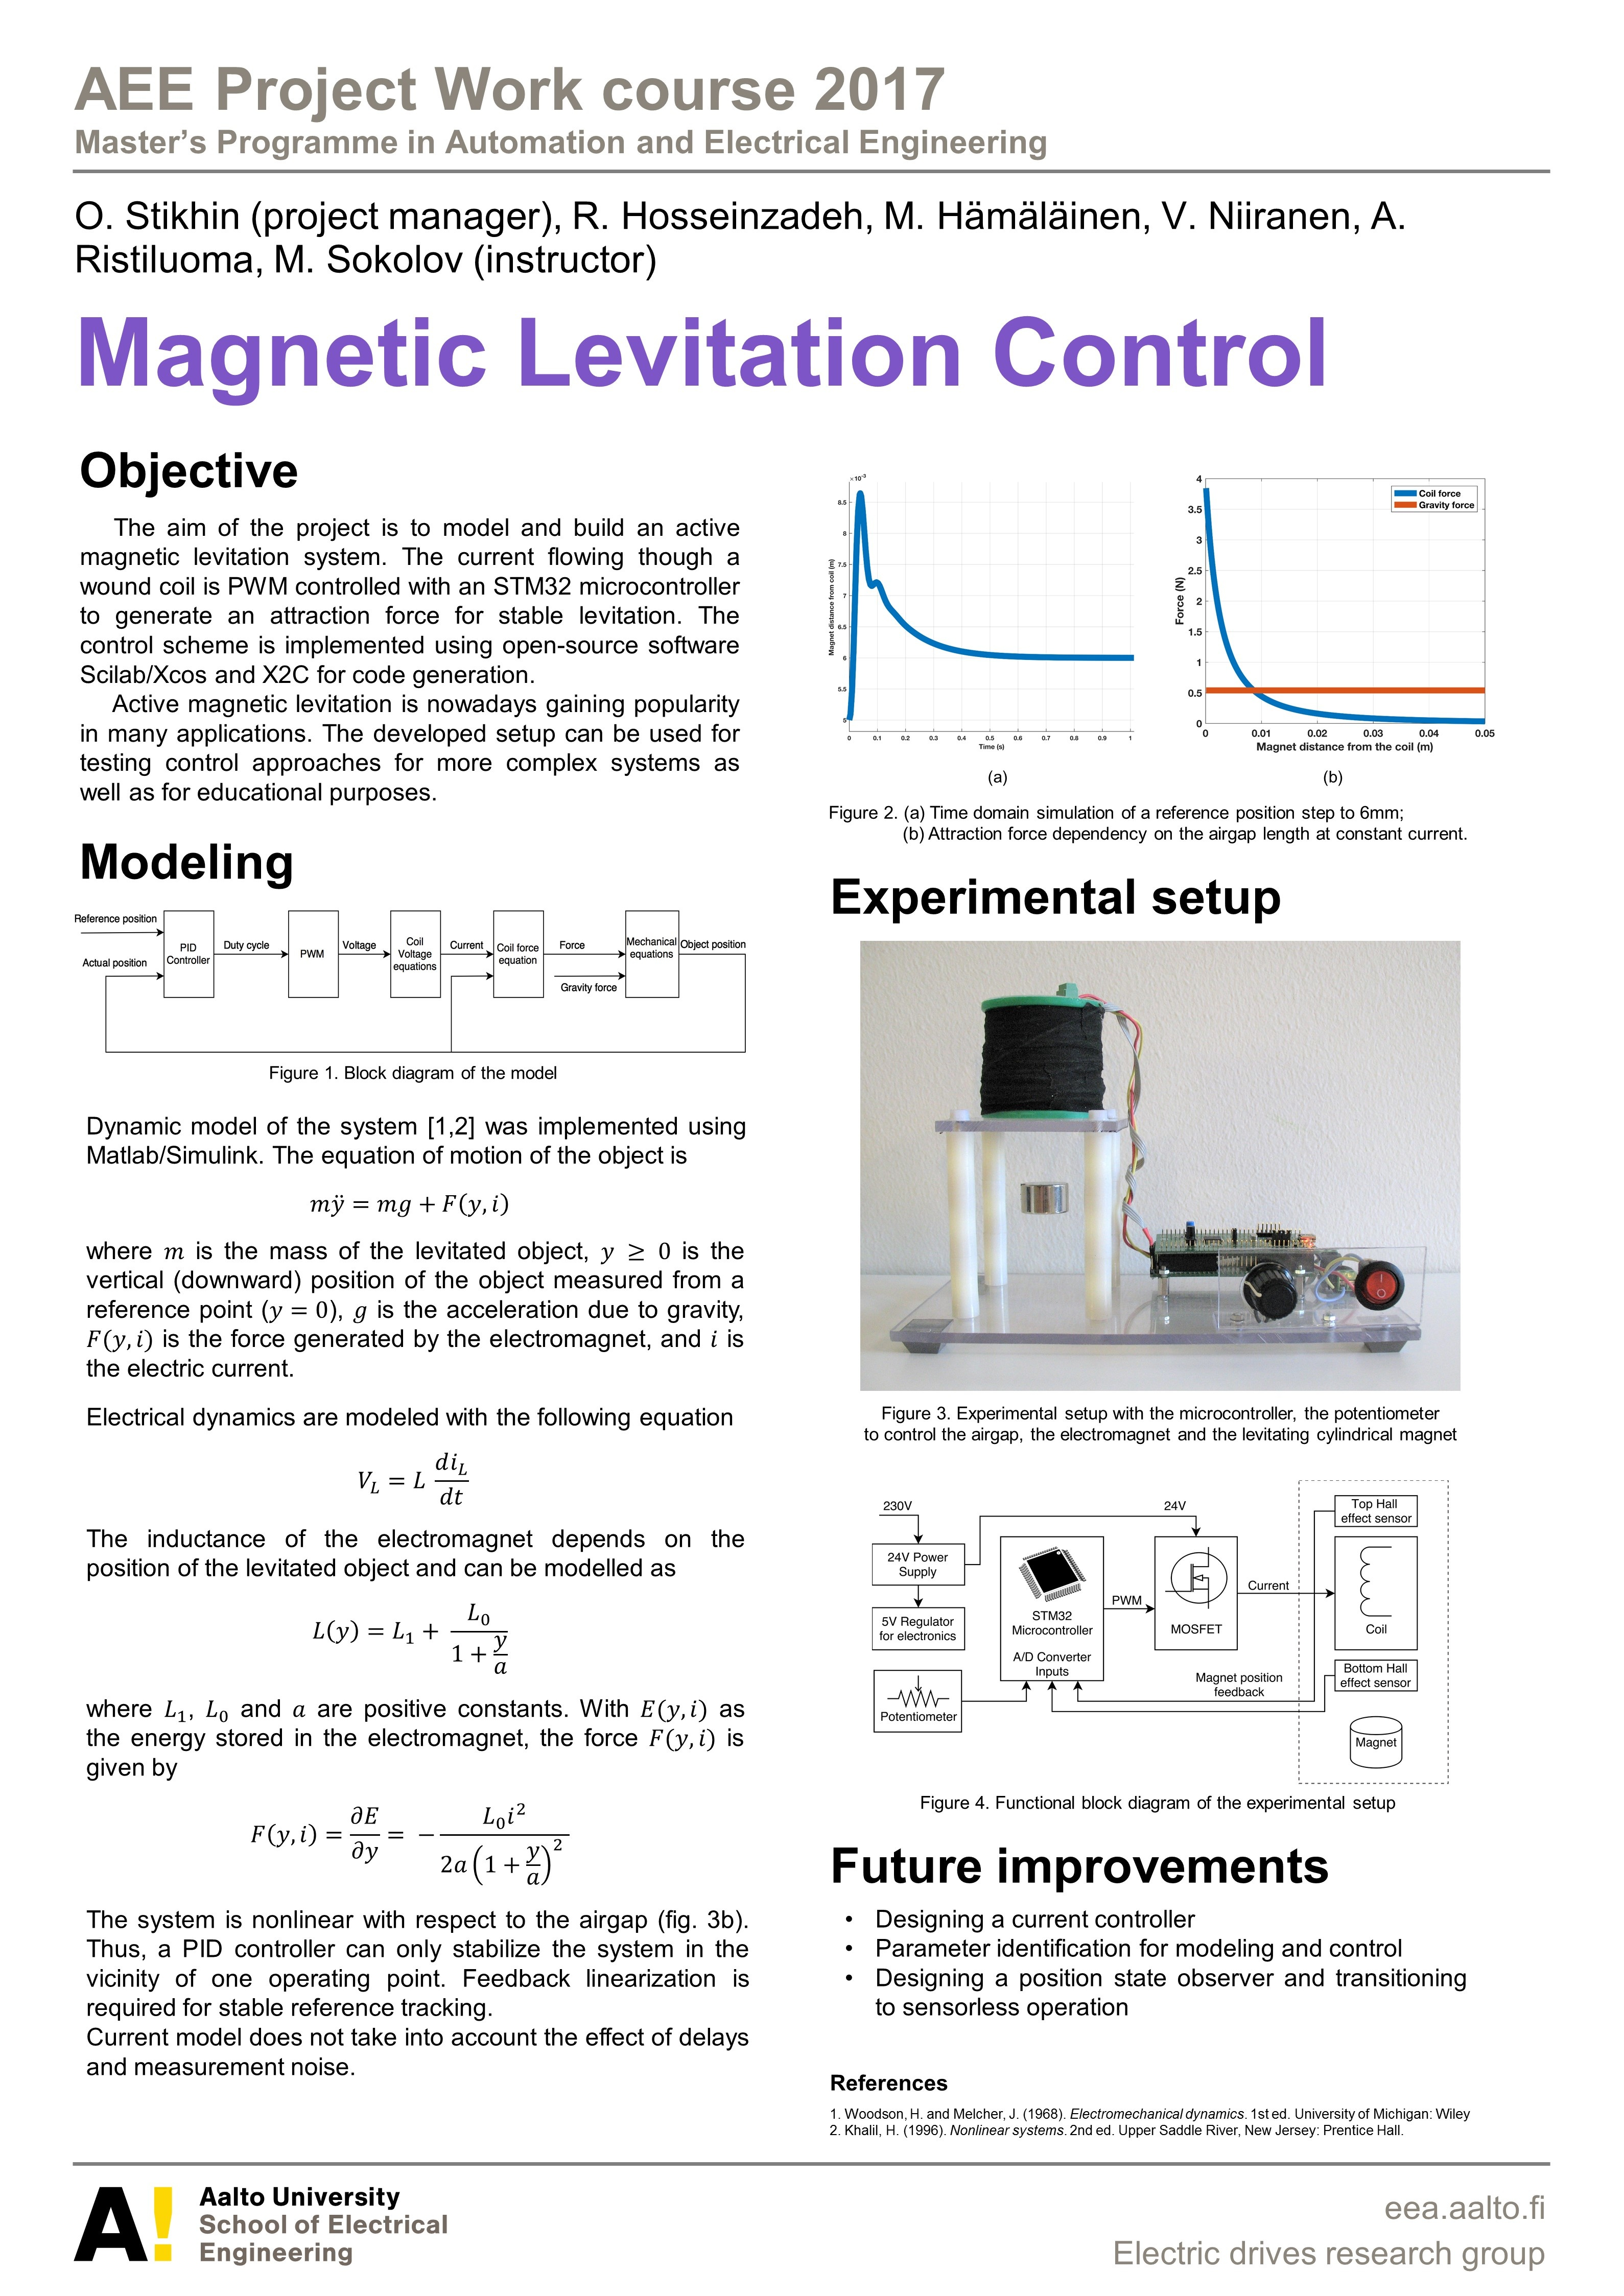 Magnetic Levitation Control - AEEproject - Aalto University Wiki